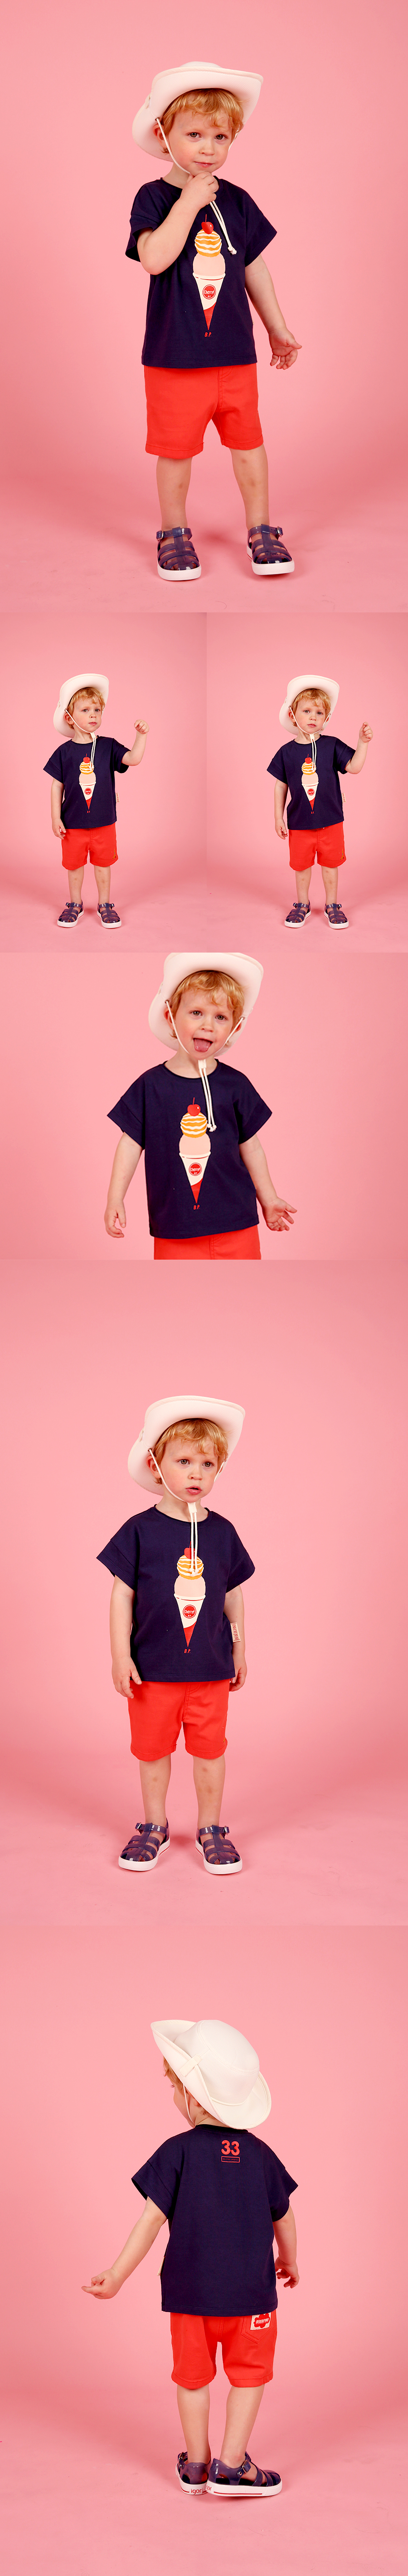 Double ice cream cone baby short sleeve tee 상세 이미지